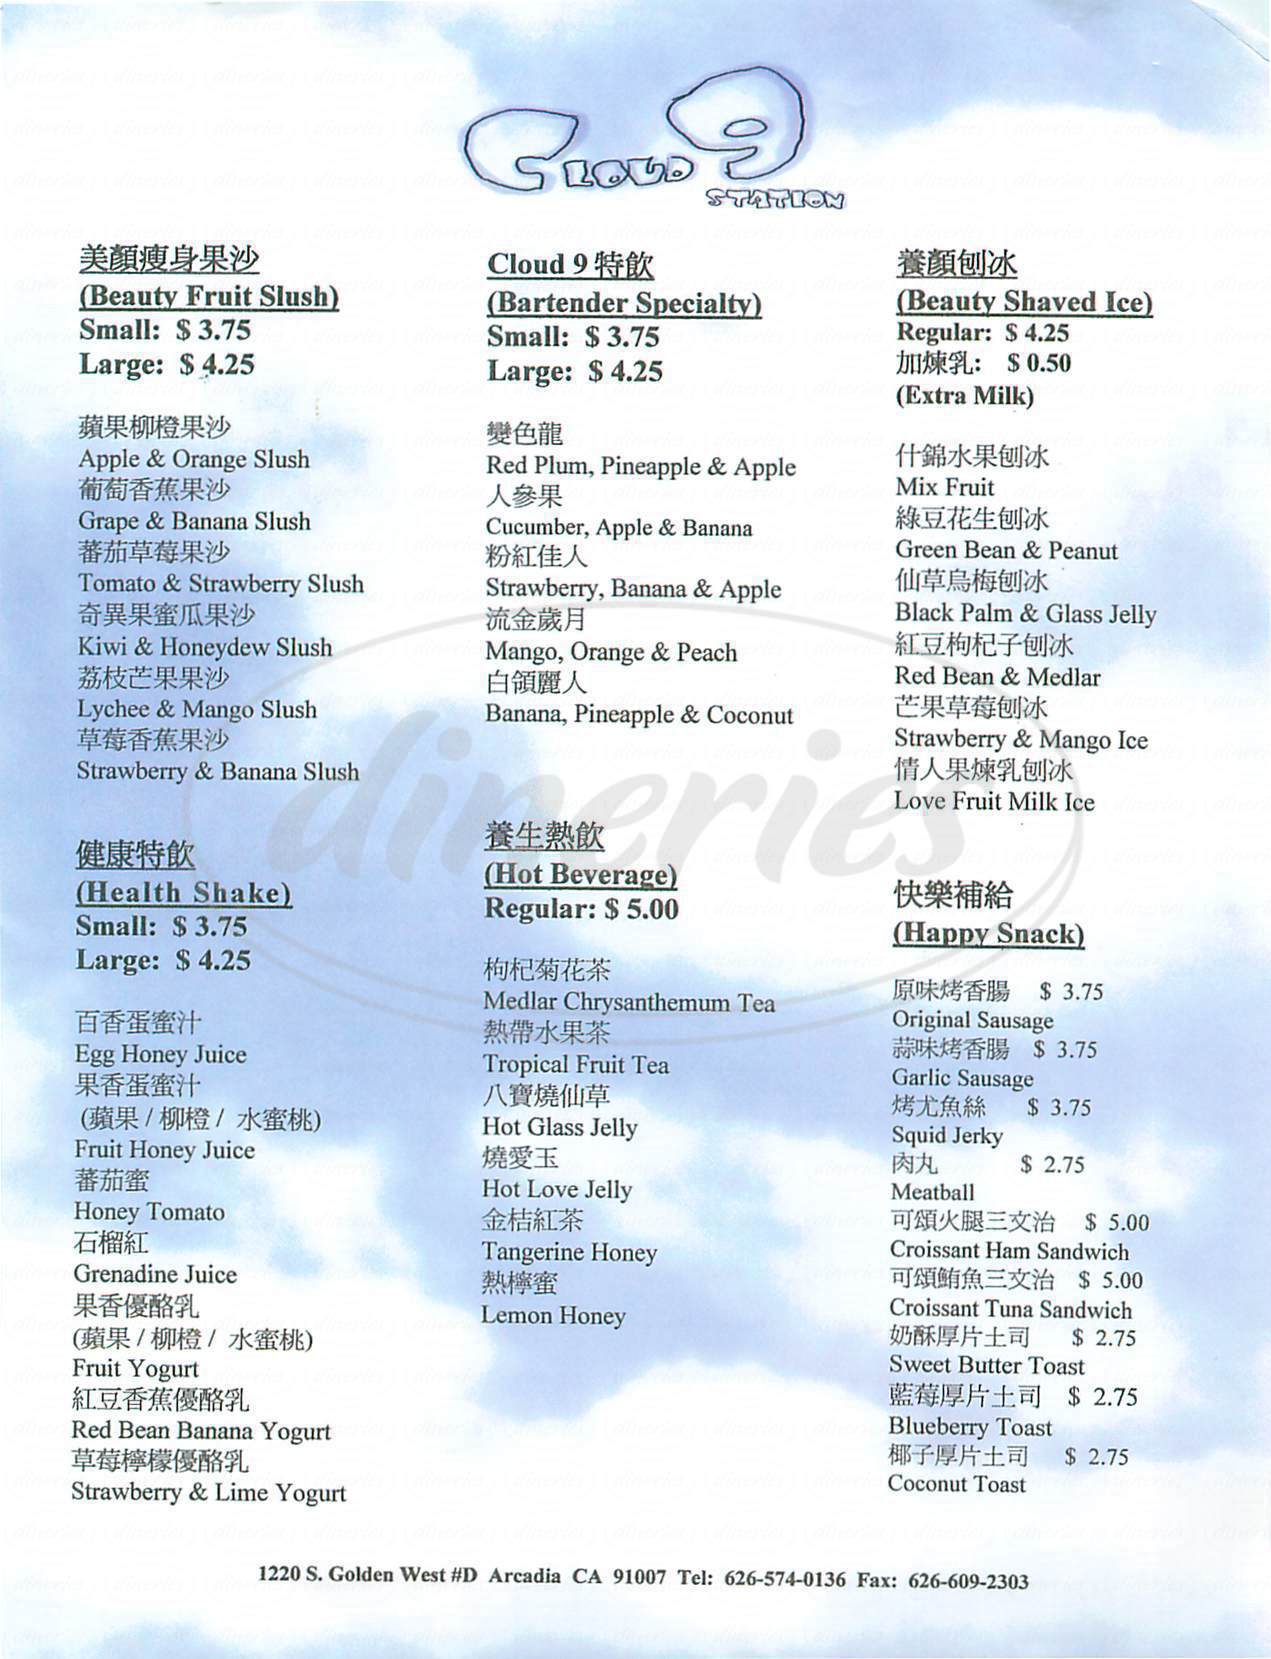 menu for Cloud 9 Station